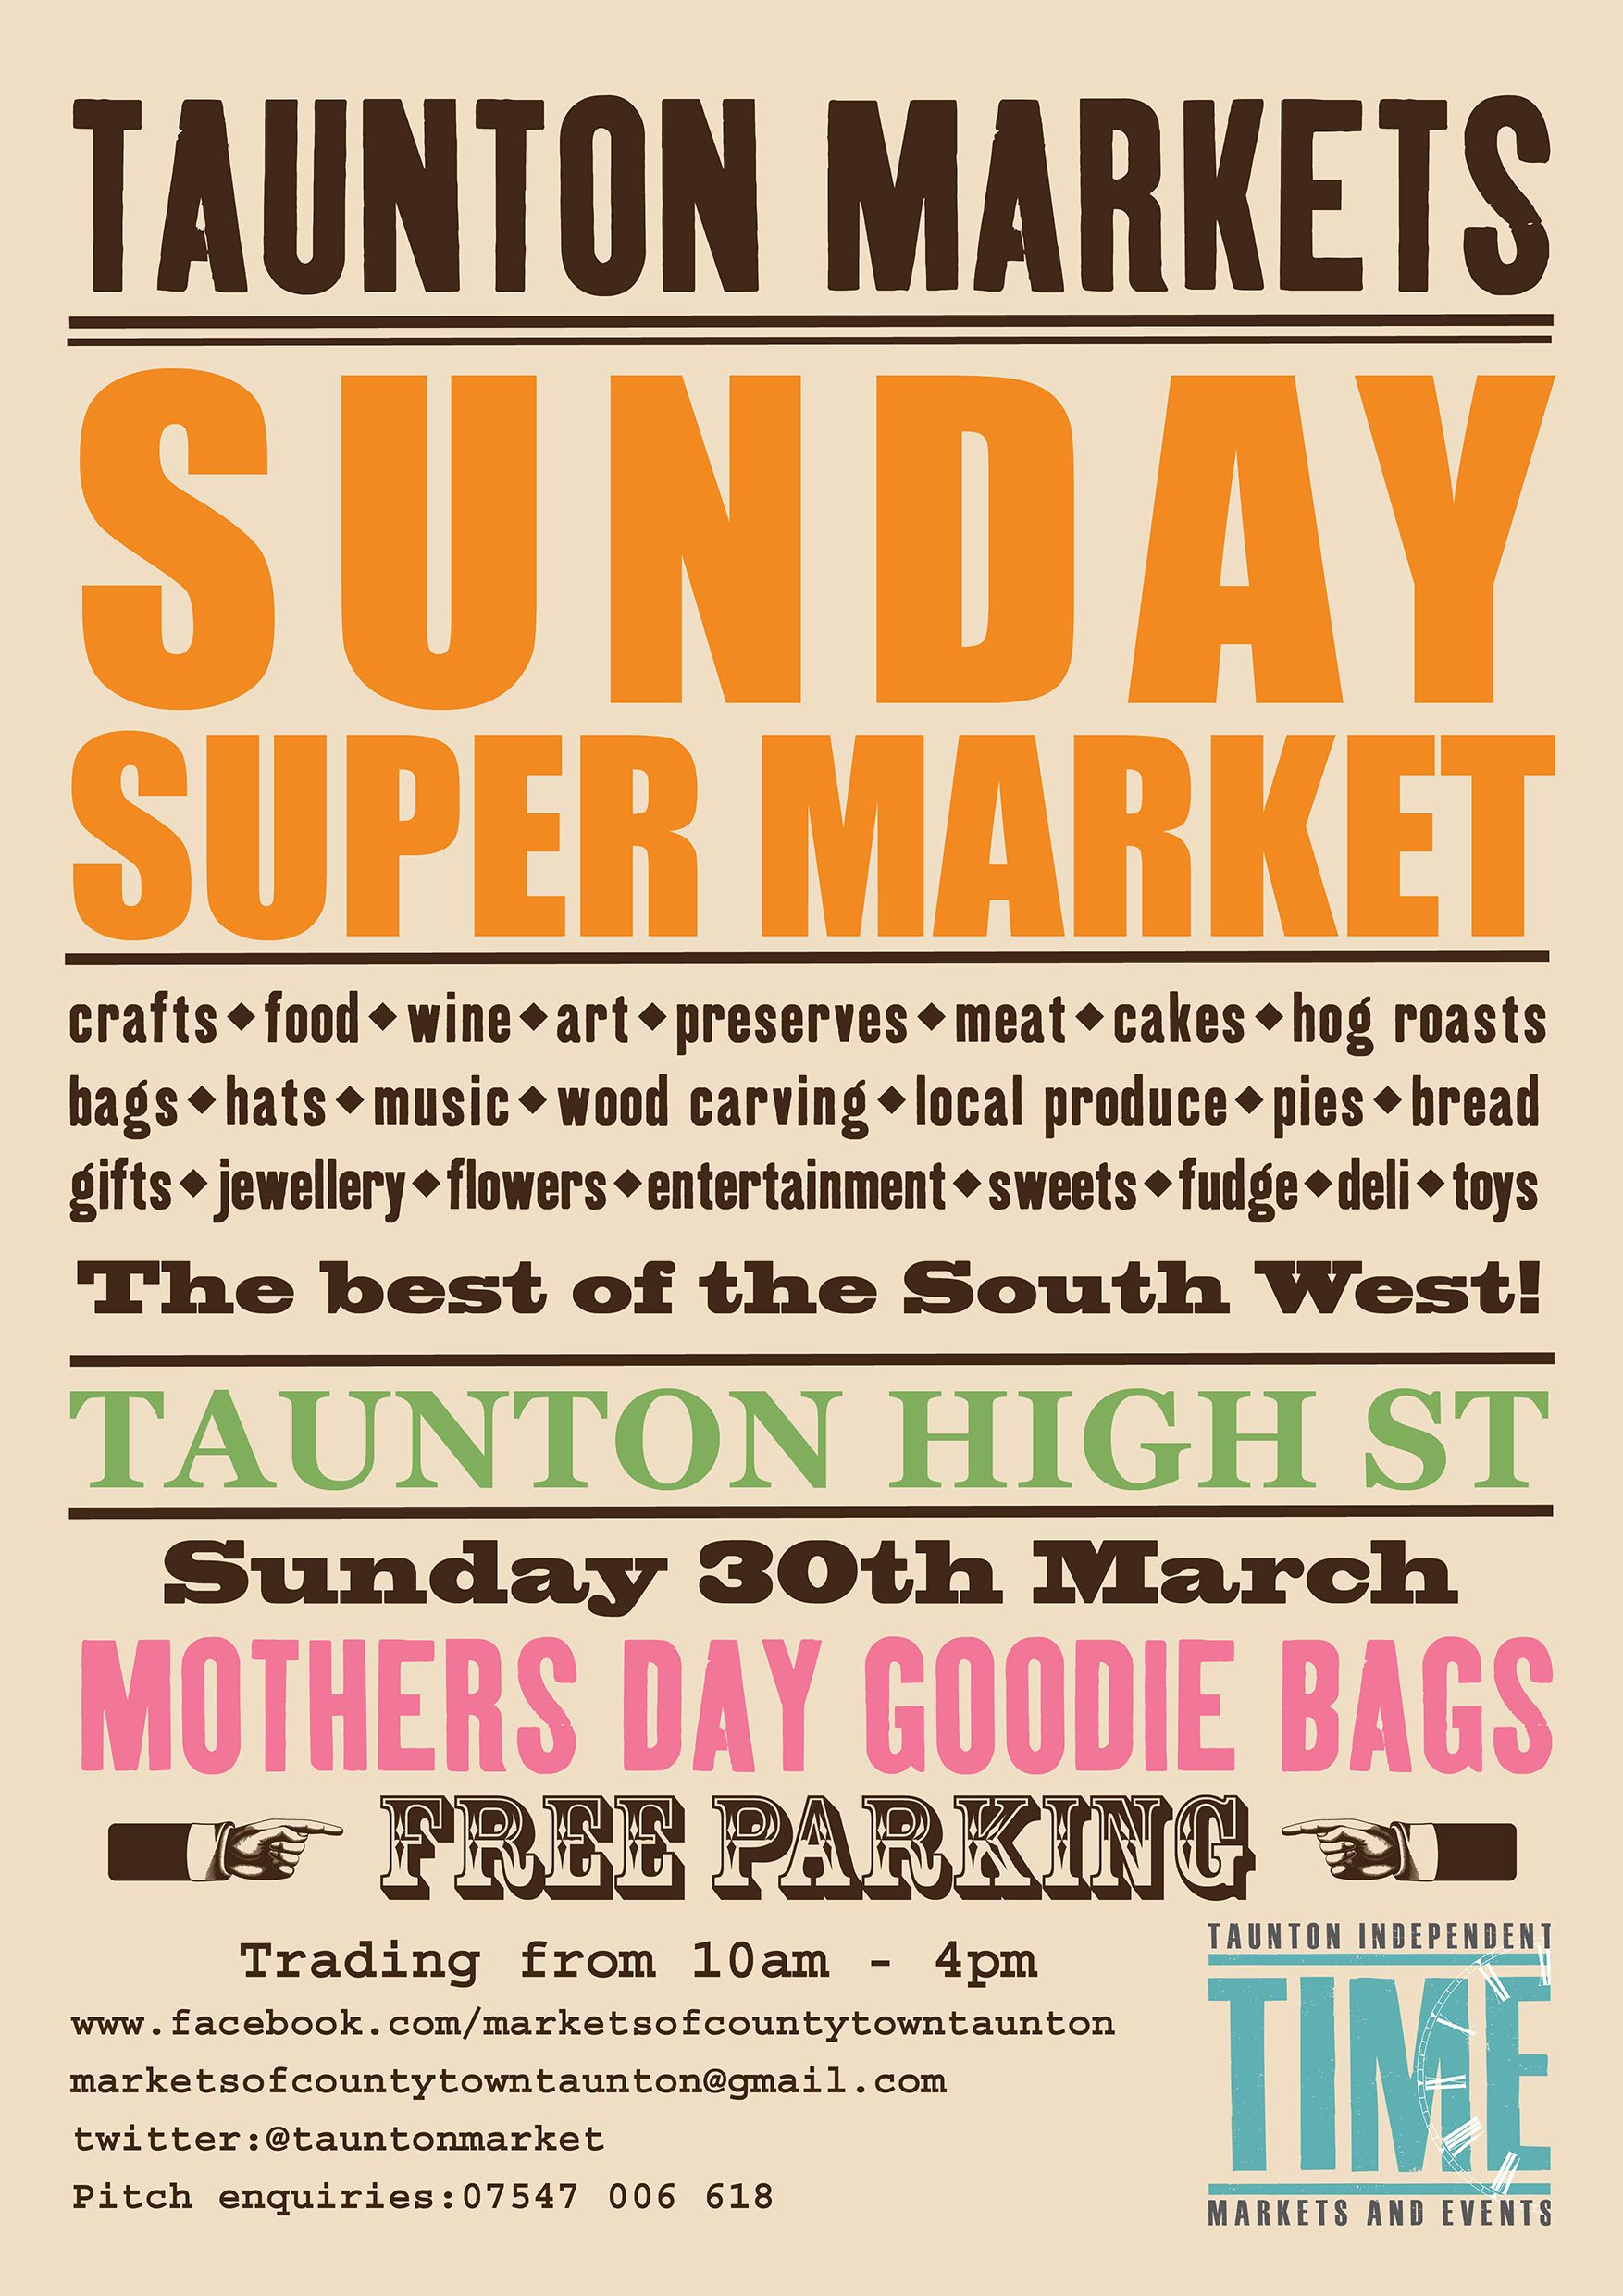 Sunday Super Market in Taunton on Mother's Day